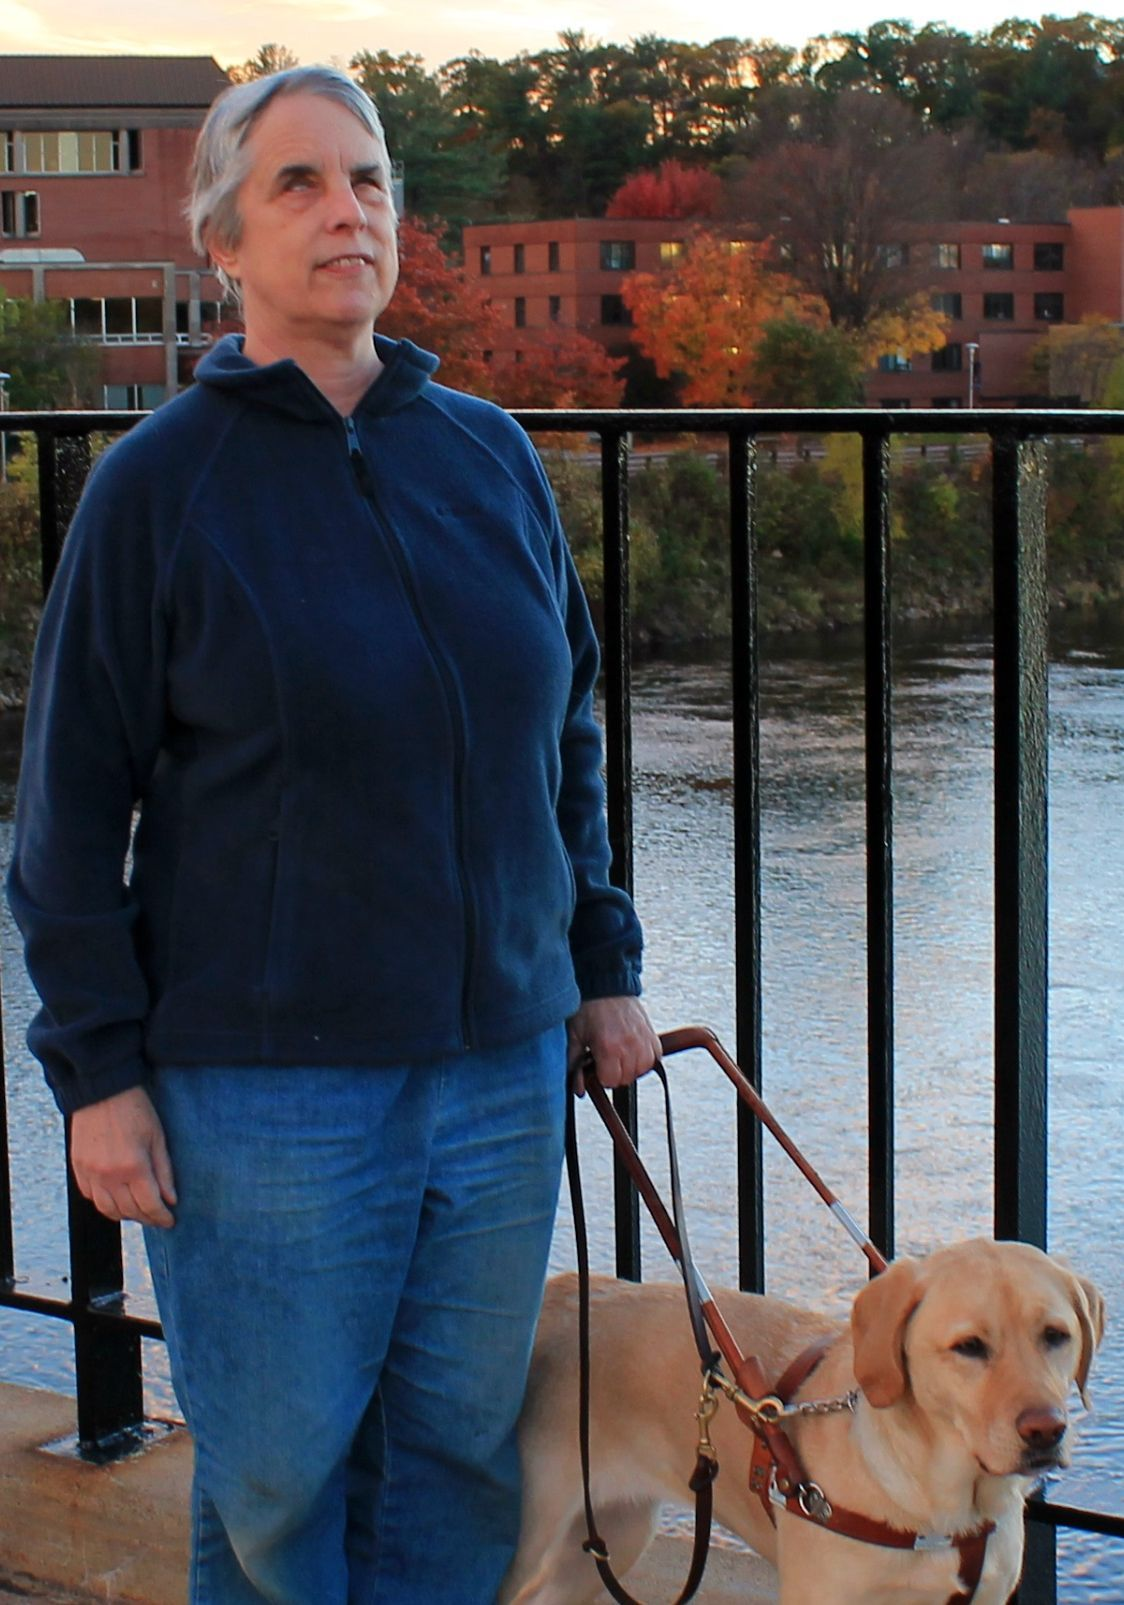 Dr. Kathie pictured with her guide dog on a bridge over a body of water